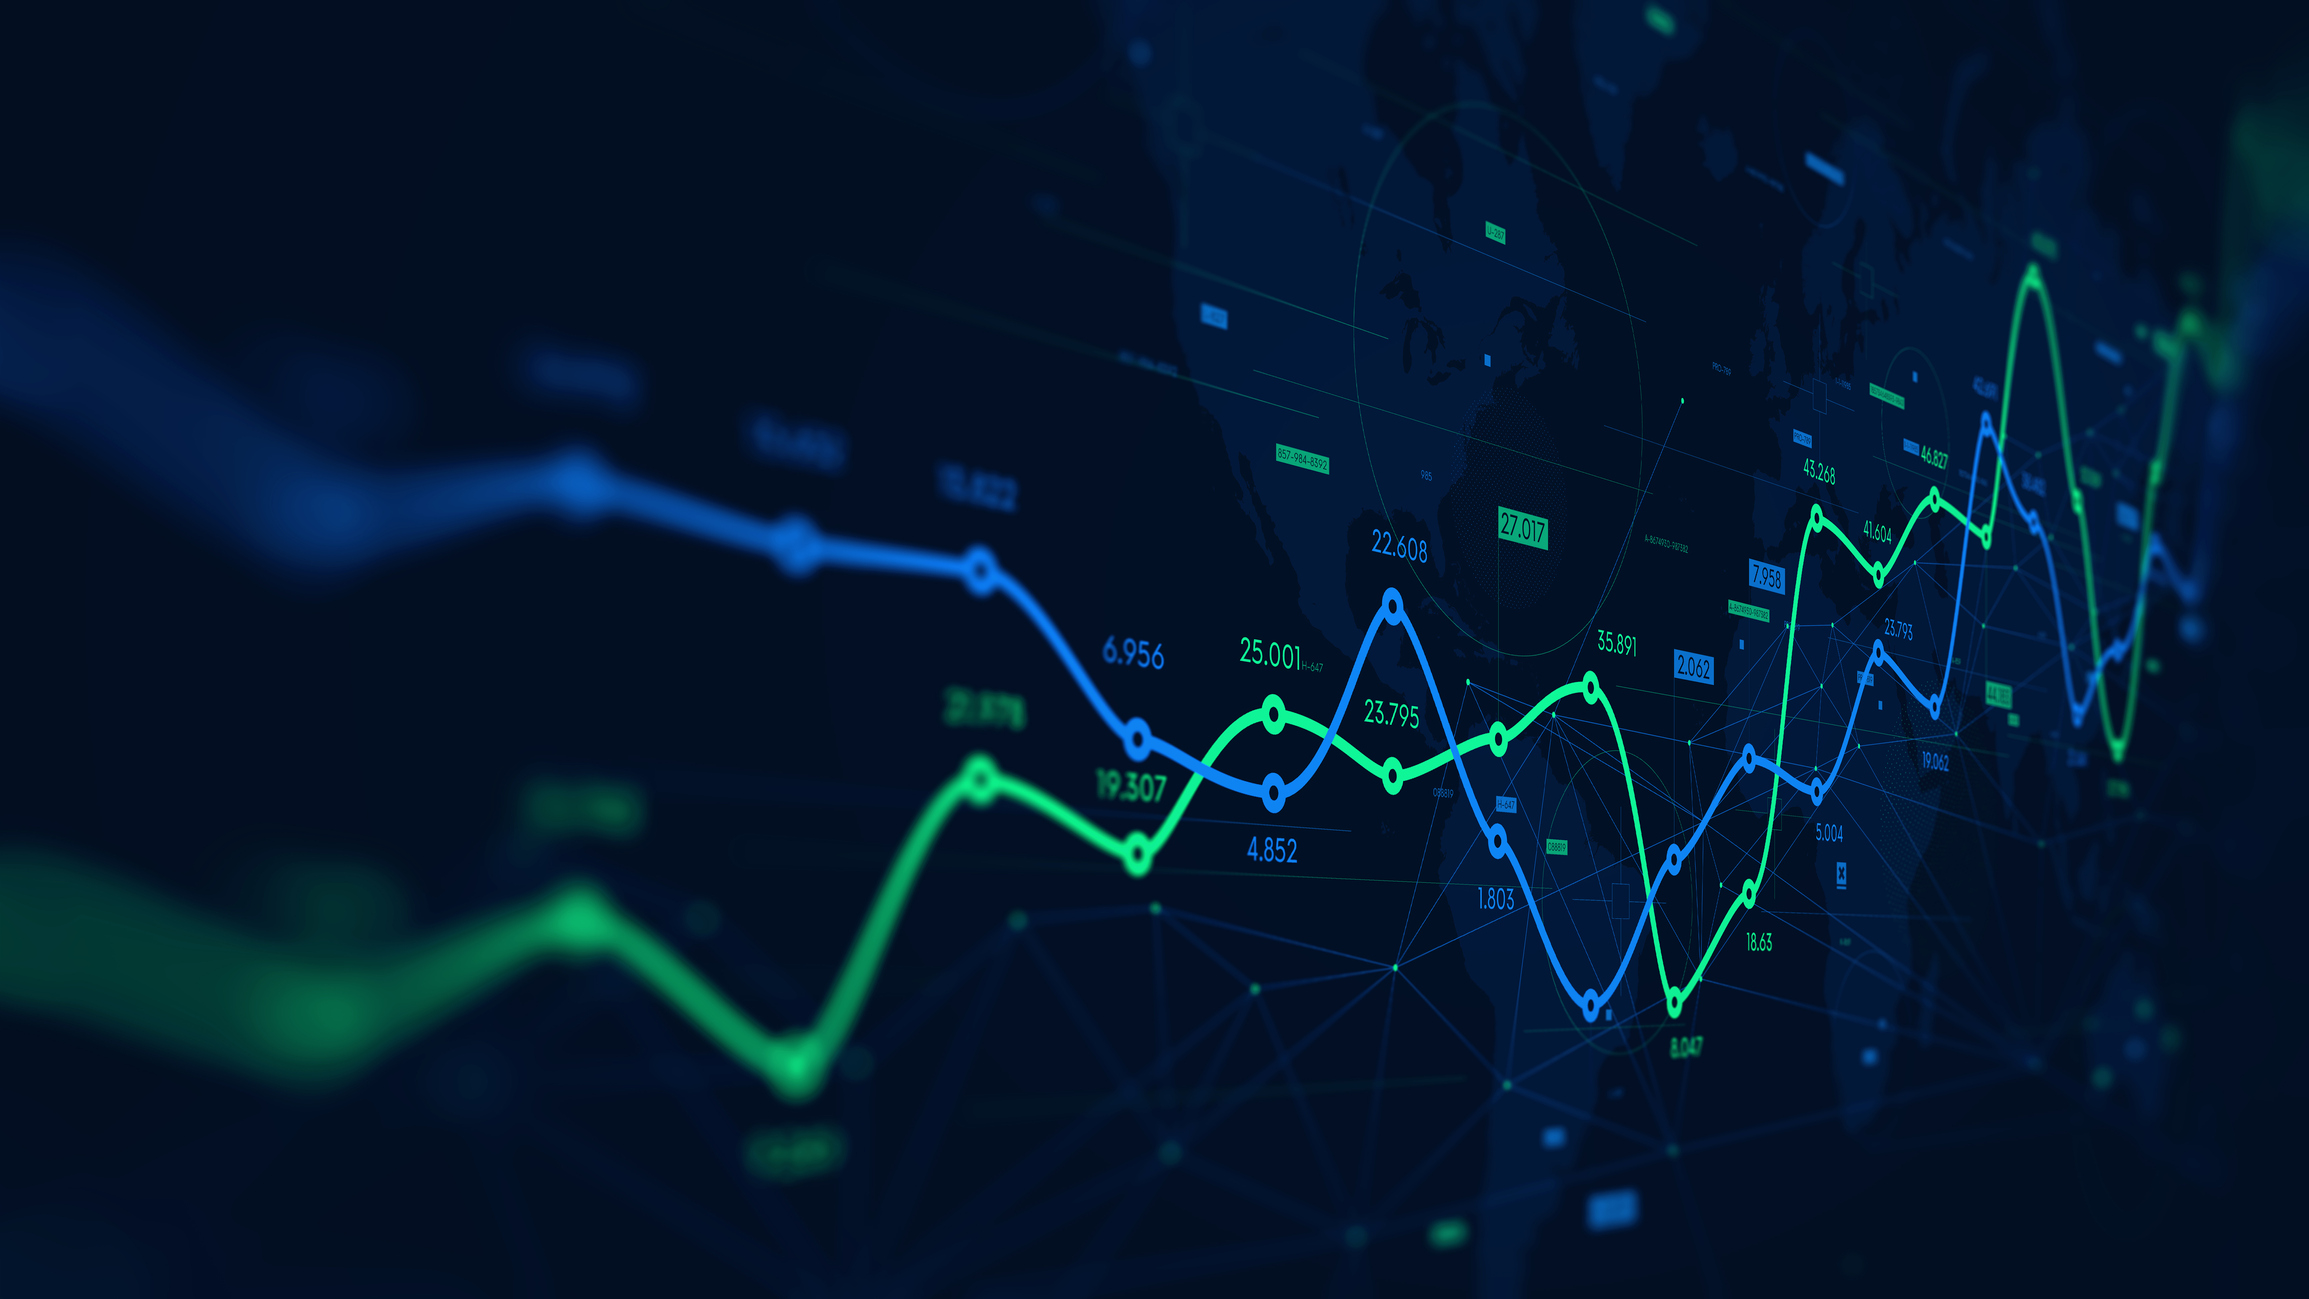 Market_Digital analytics data visualization, financial schedule, monitor screen in perspective for presentations